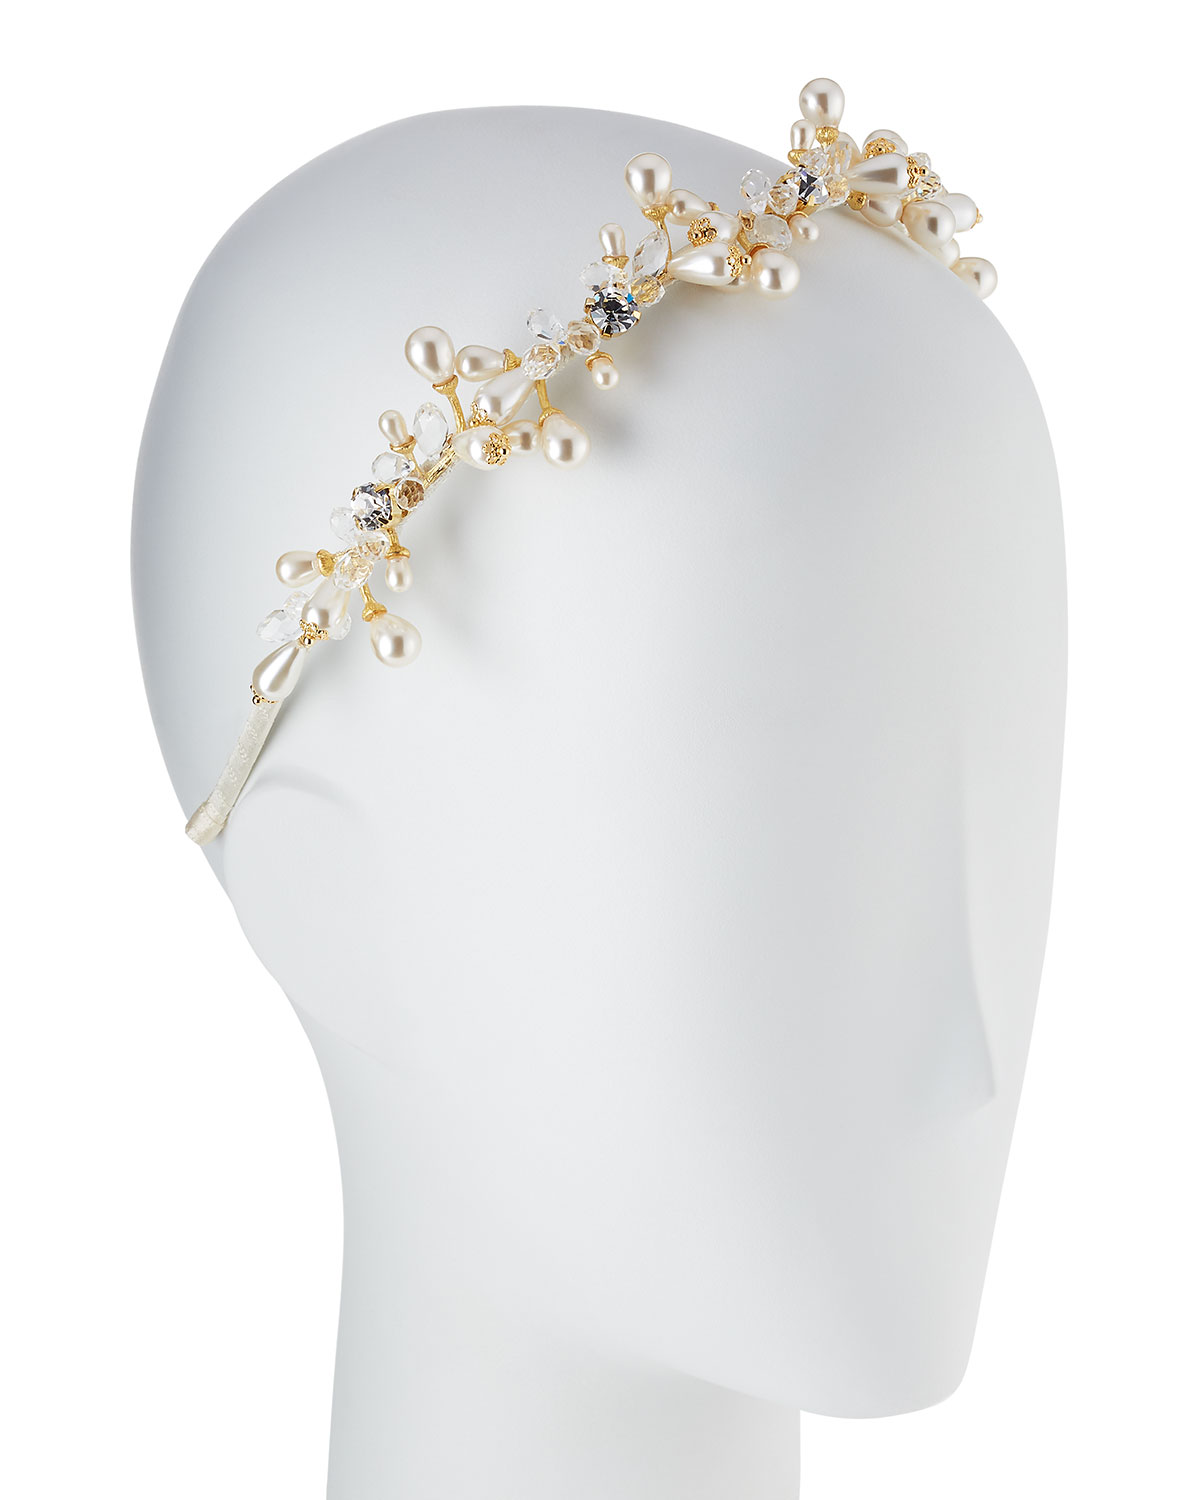 Bari Lynn Girls Jeweled Headband, White/Golden